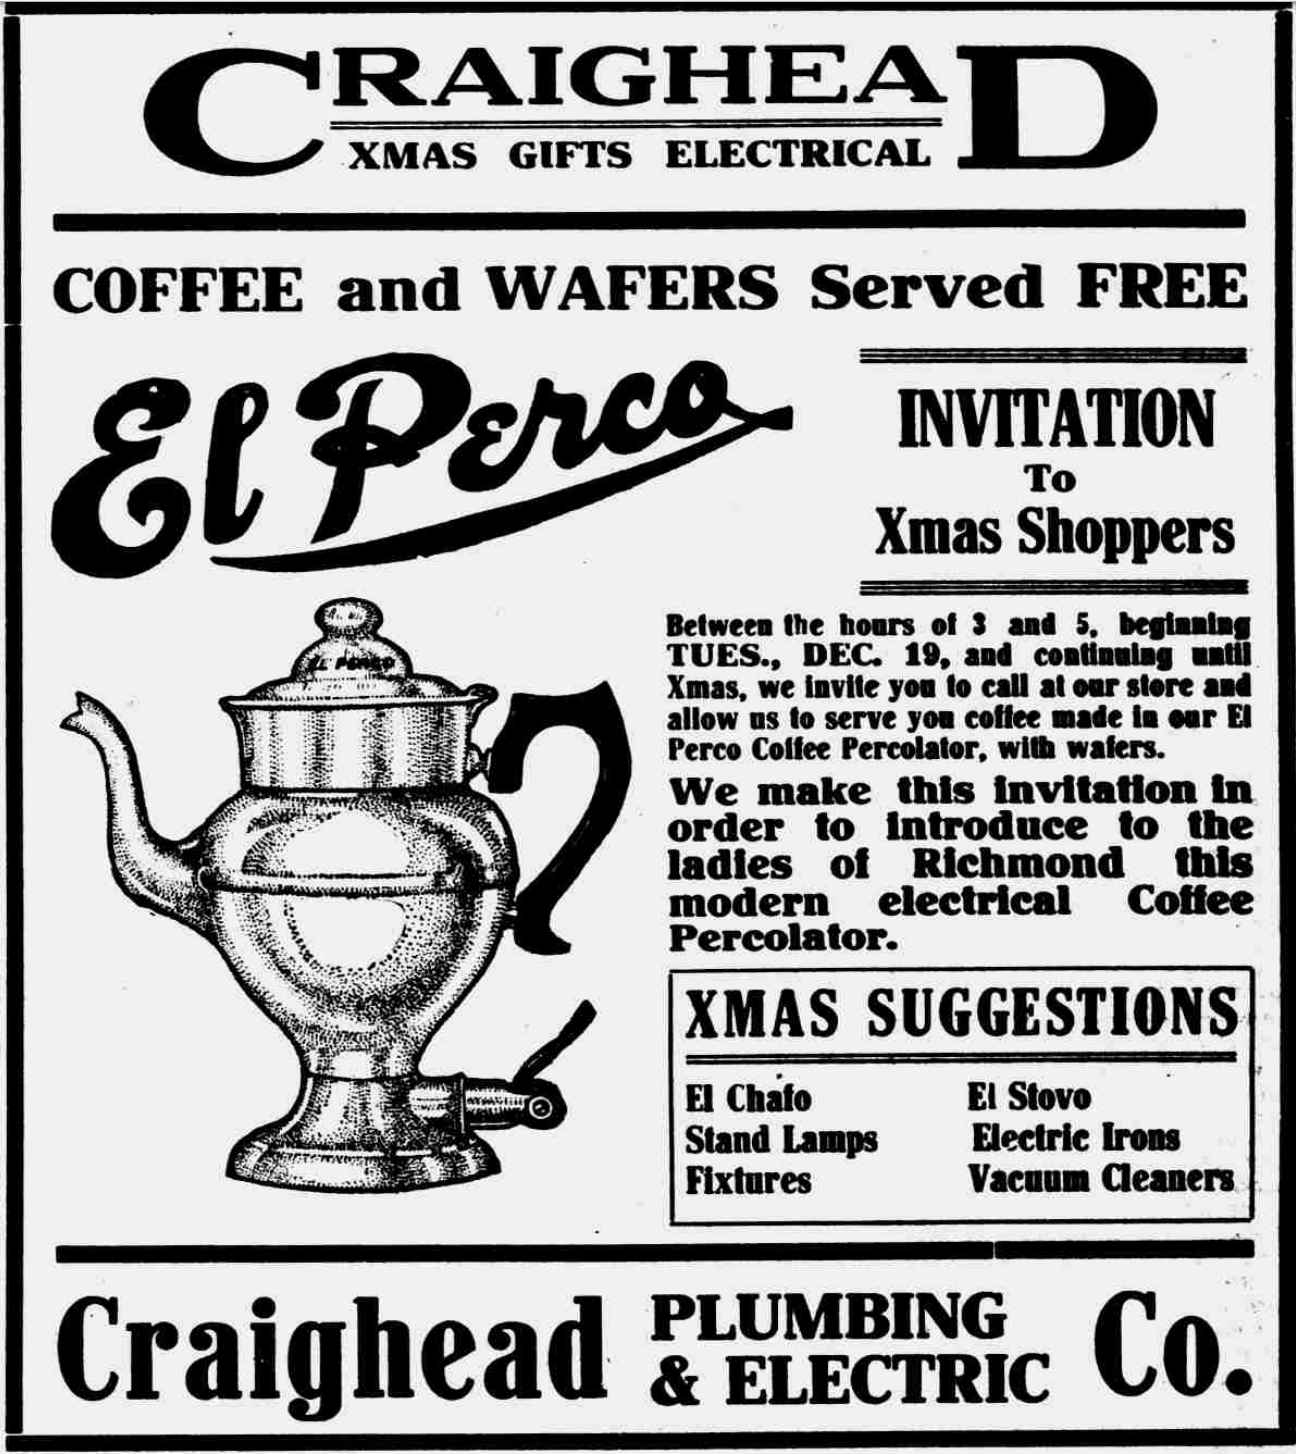 El Perco Advertisement_1911